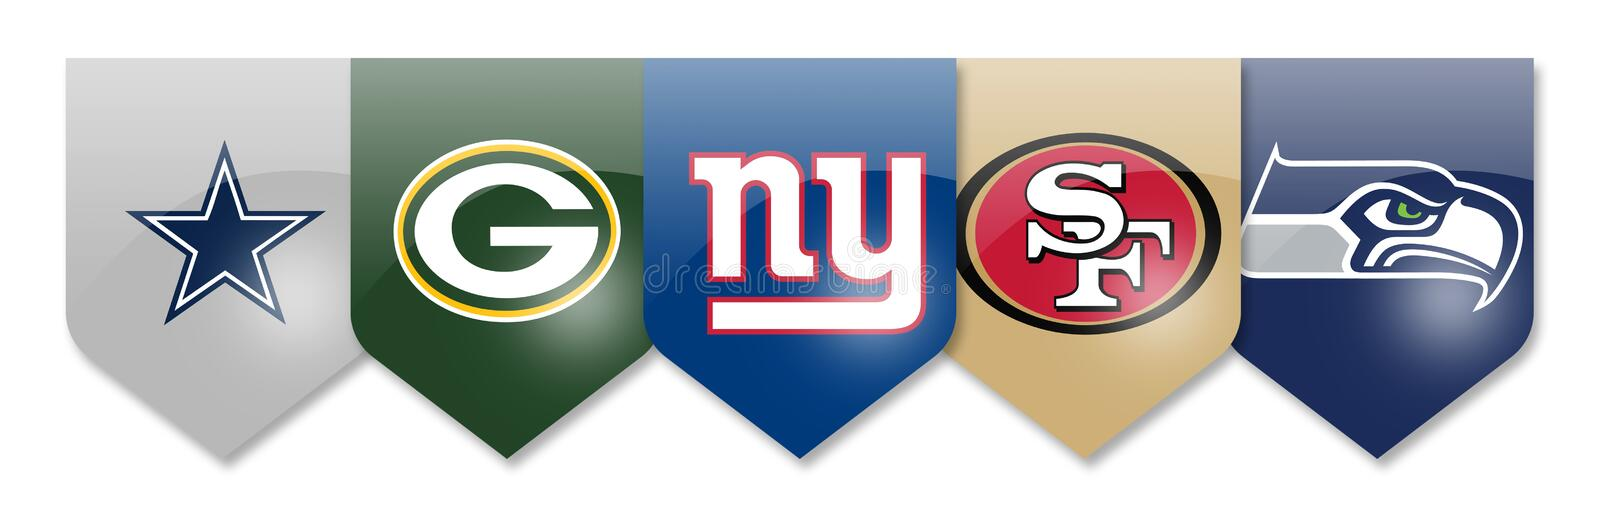 Nfl teams on white. Nfl teams,cowboys,packers,giants,49ers and seahawks